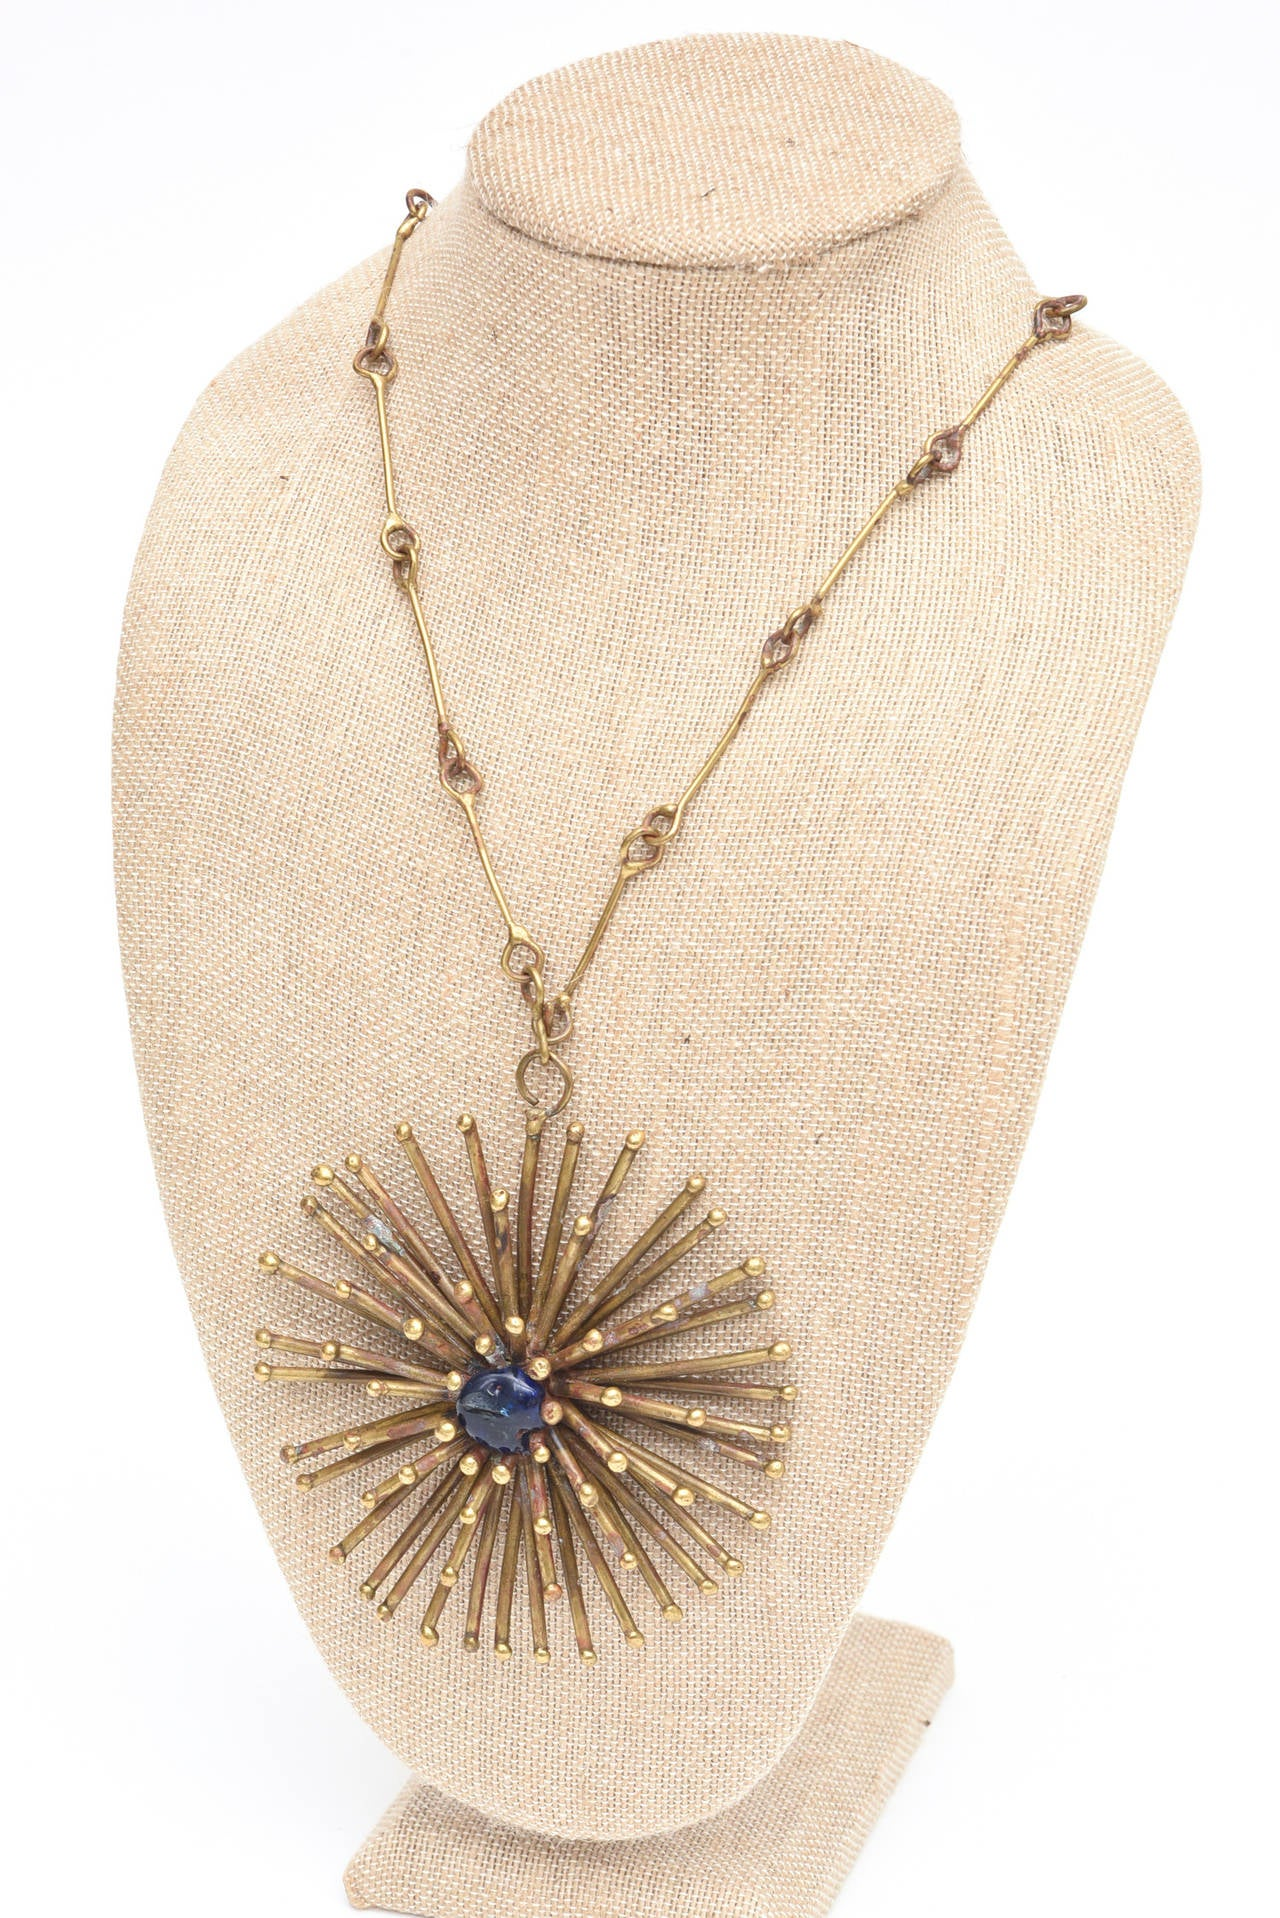 Bronze Hand Wrought Starburst Medallion and Blue Stone Necklace 7